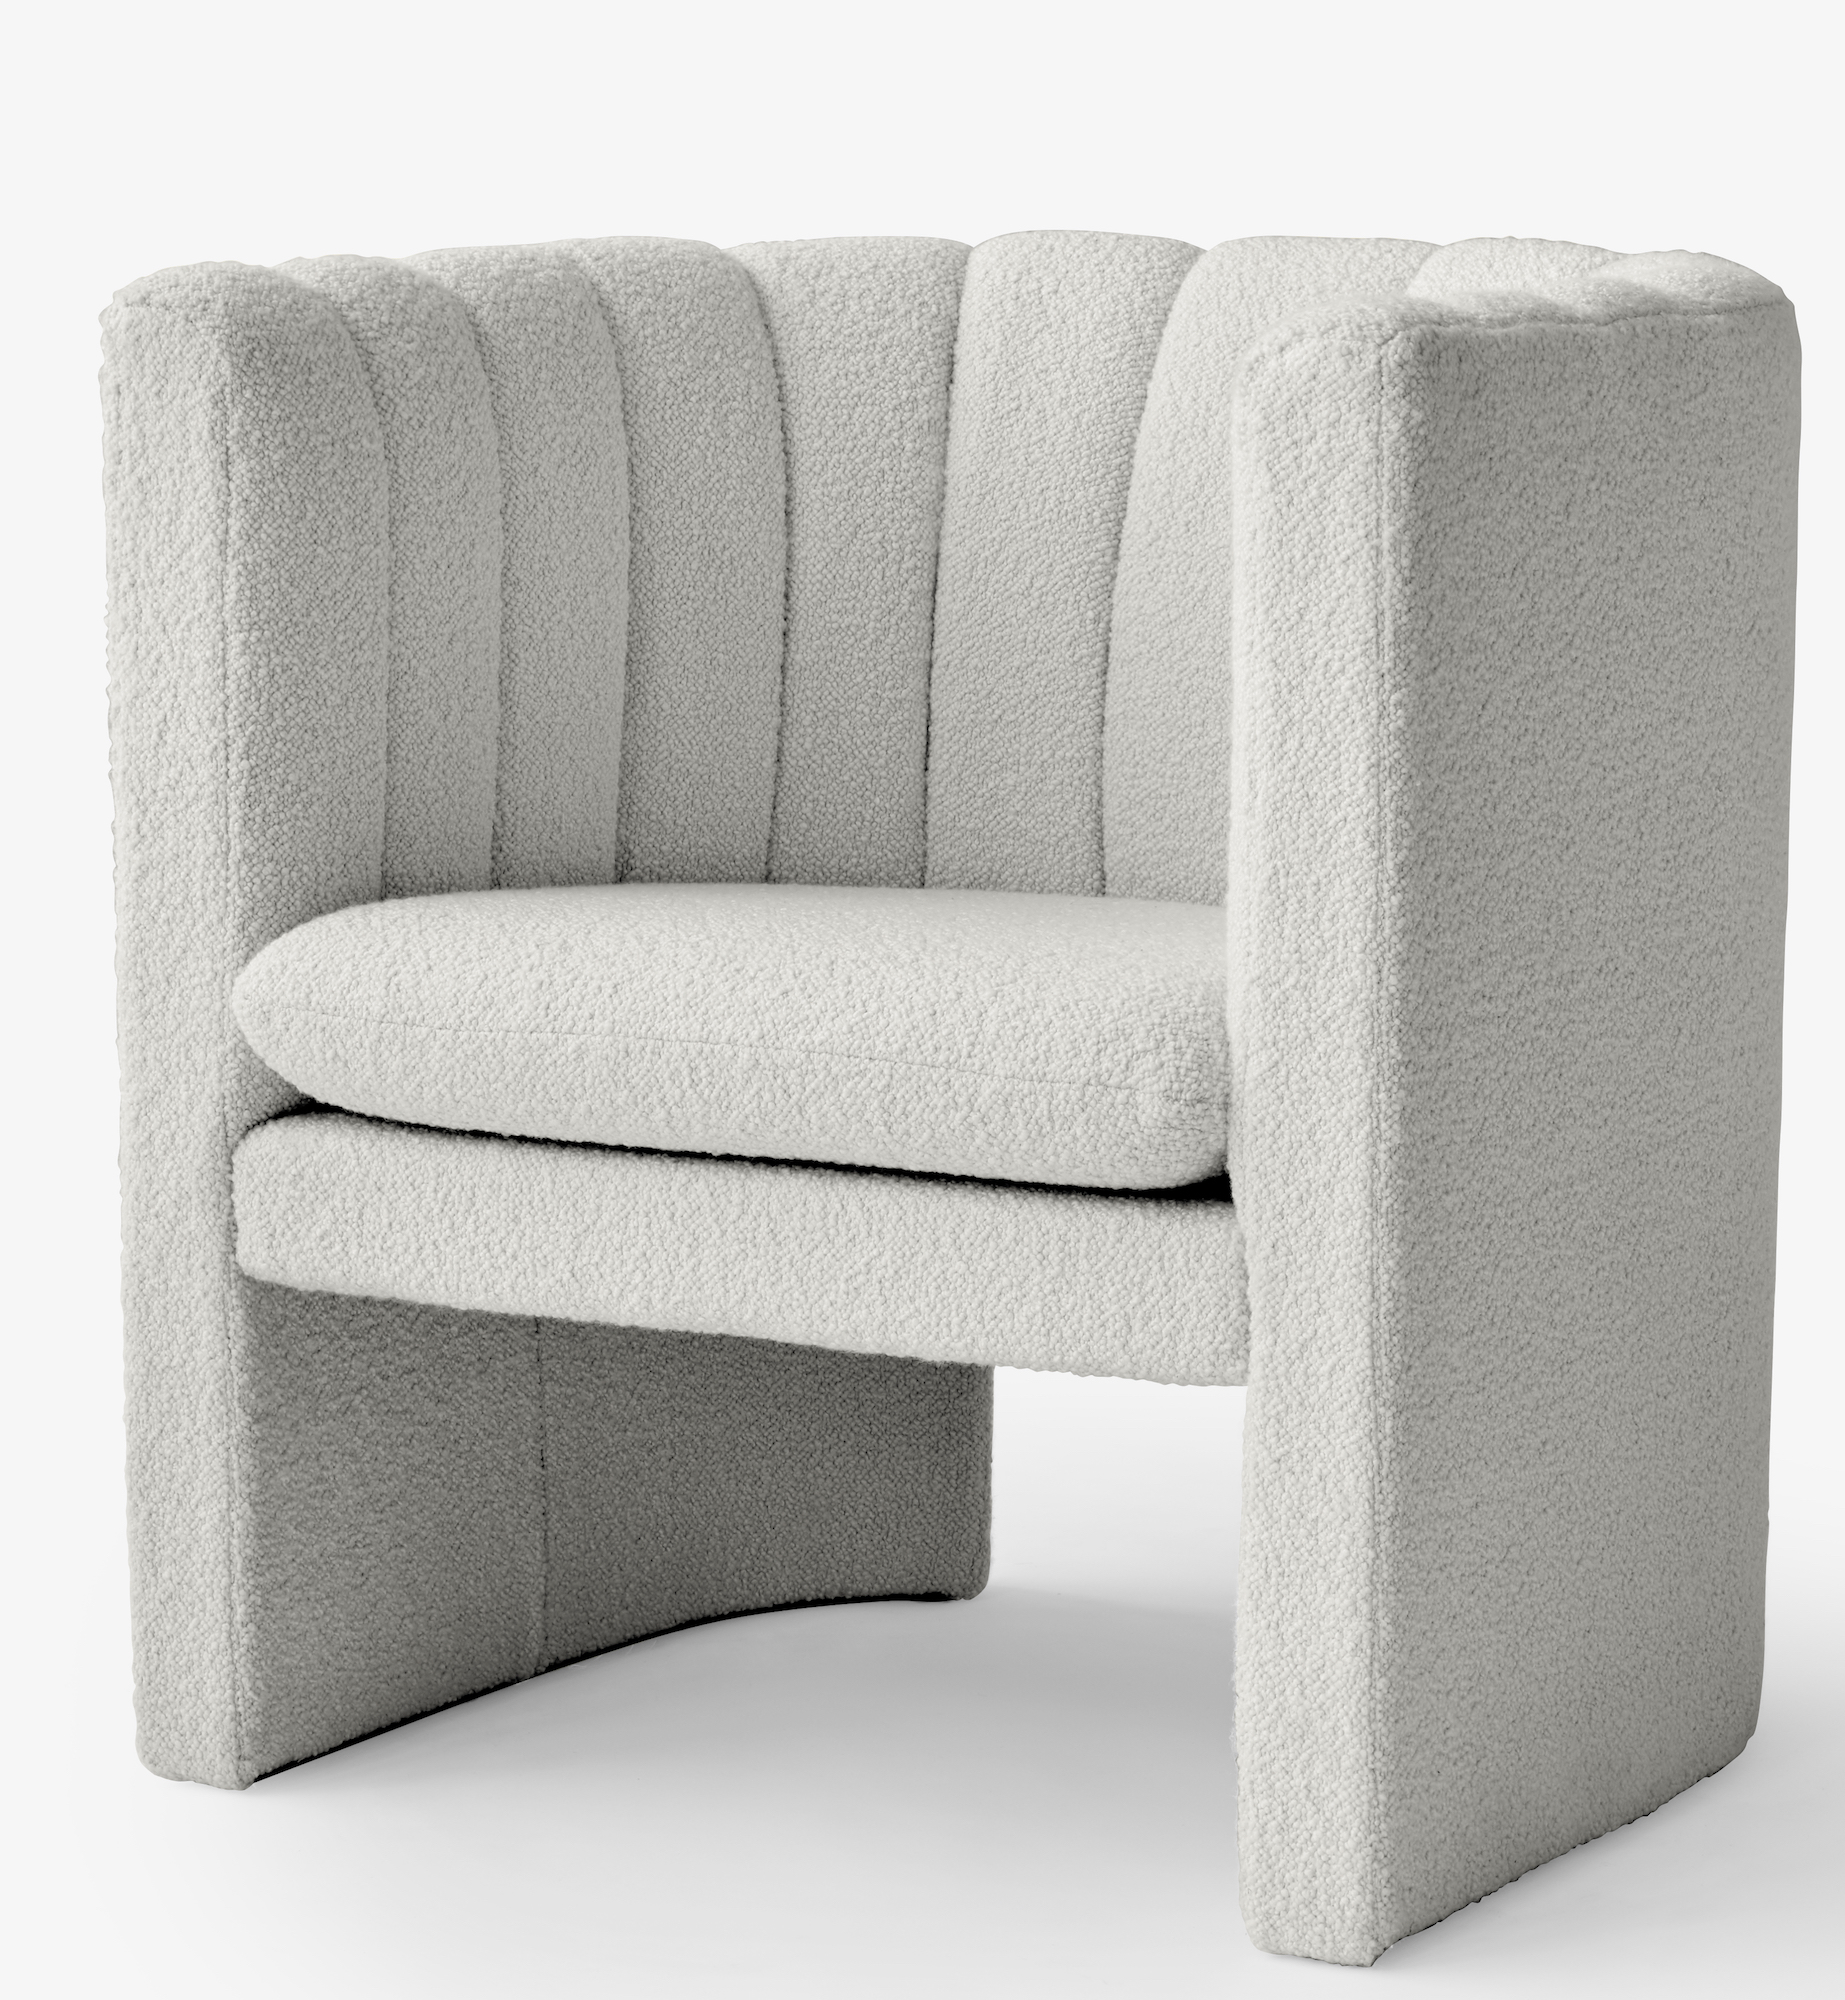 Tradition loafer chair design space copenhagen for Scandic design